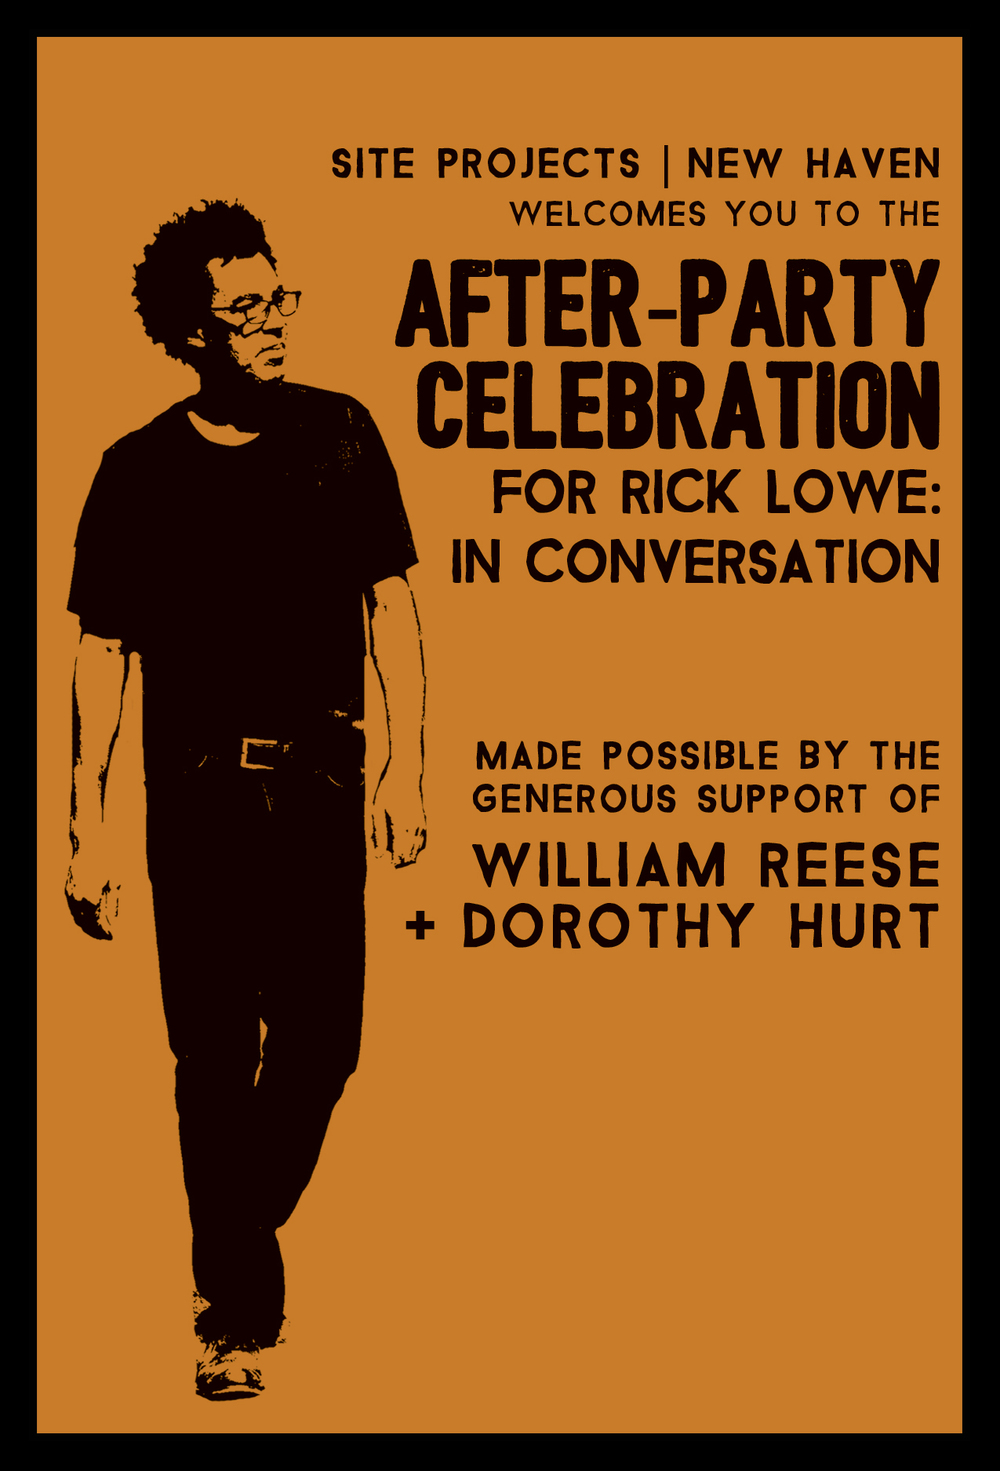 Rick-Lowe-After-Party-front.jpg